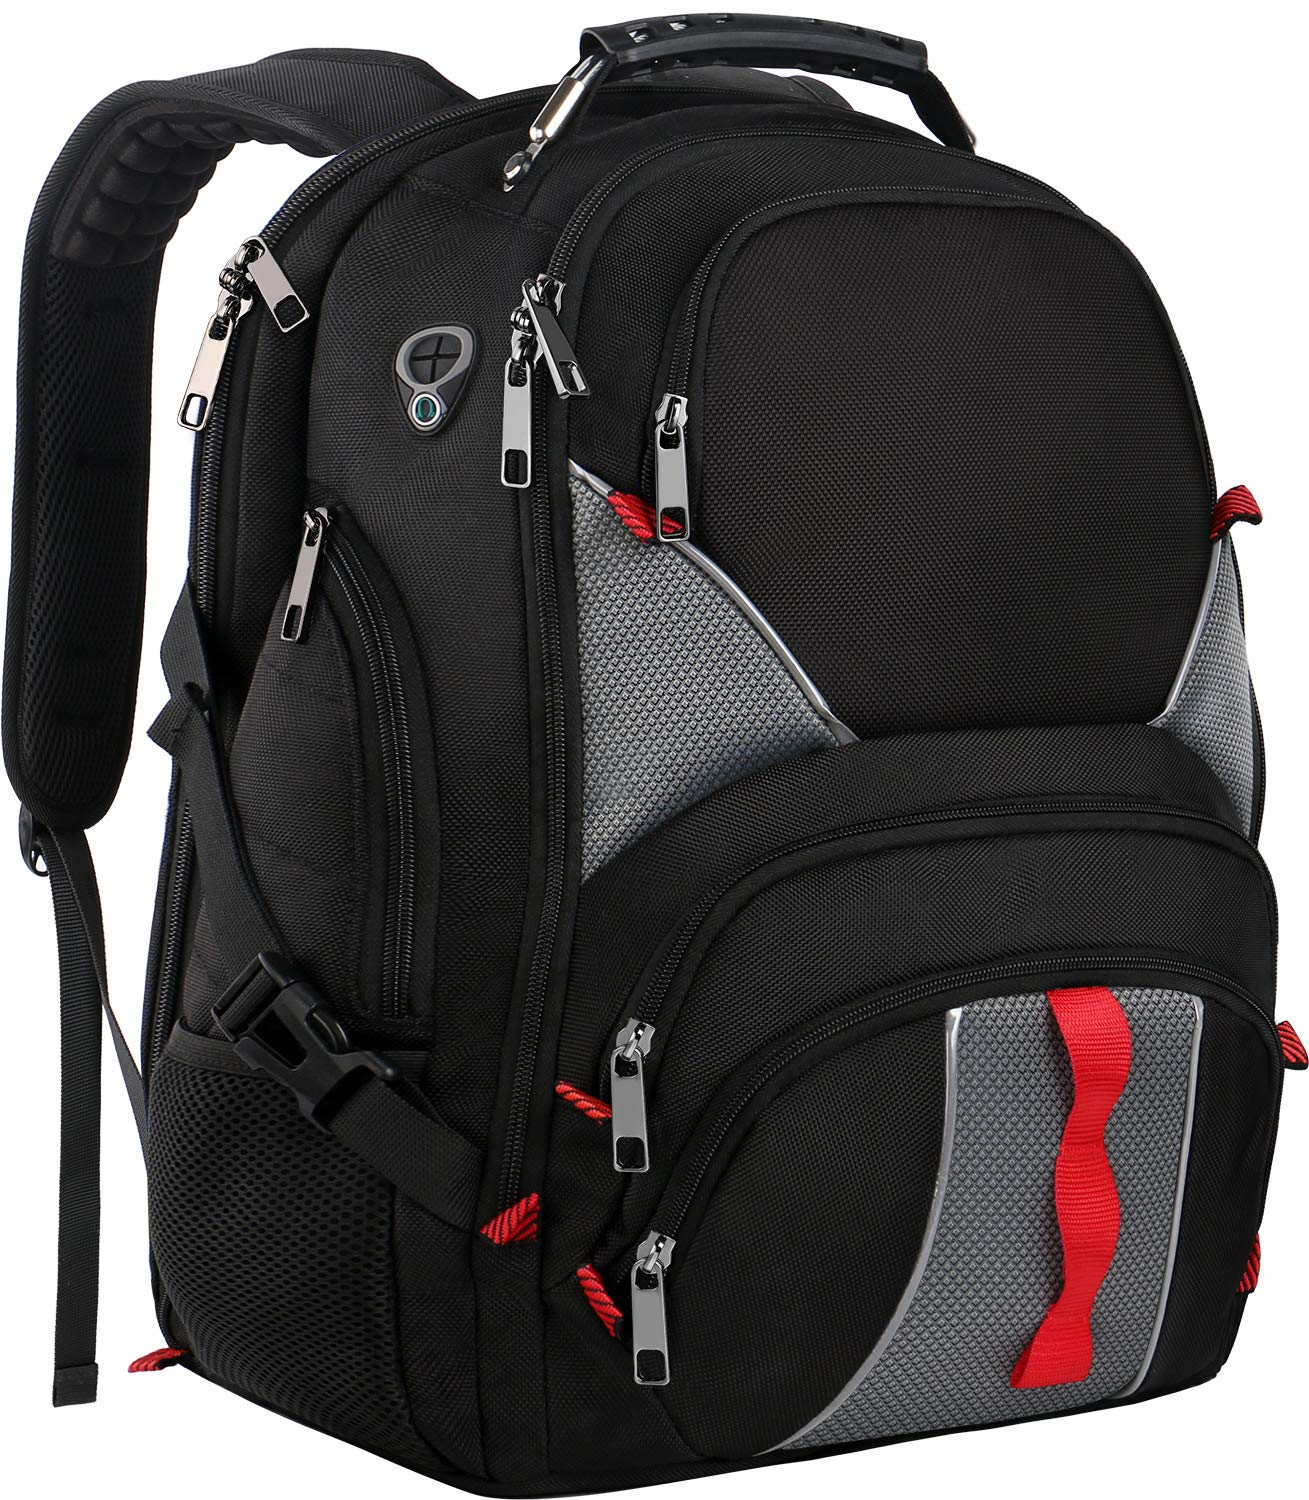 7a632ae63e4 Best Computer Backpacks For College Students - CEAGESP